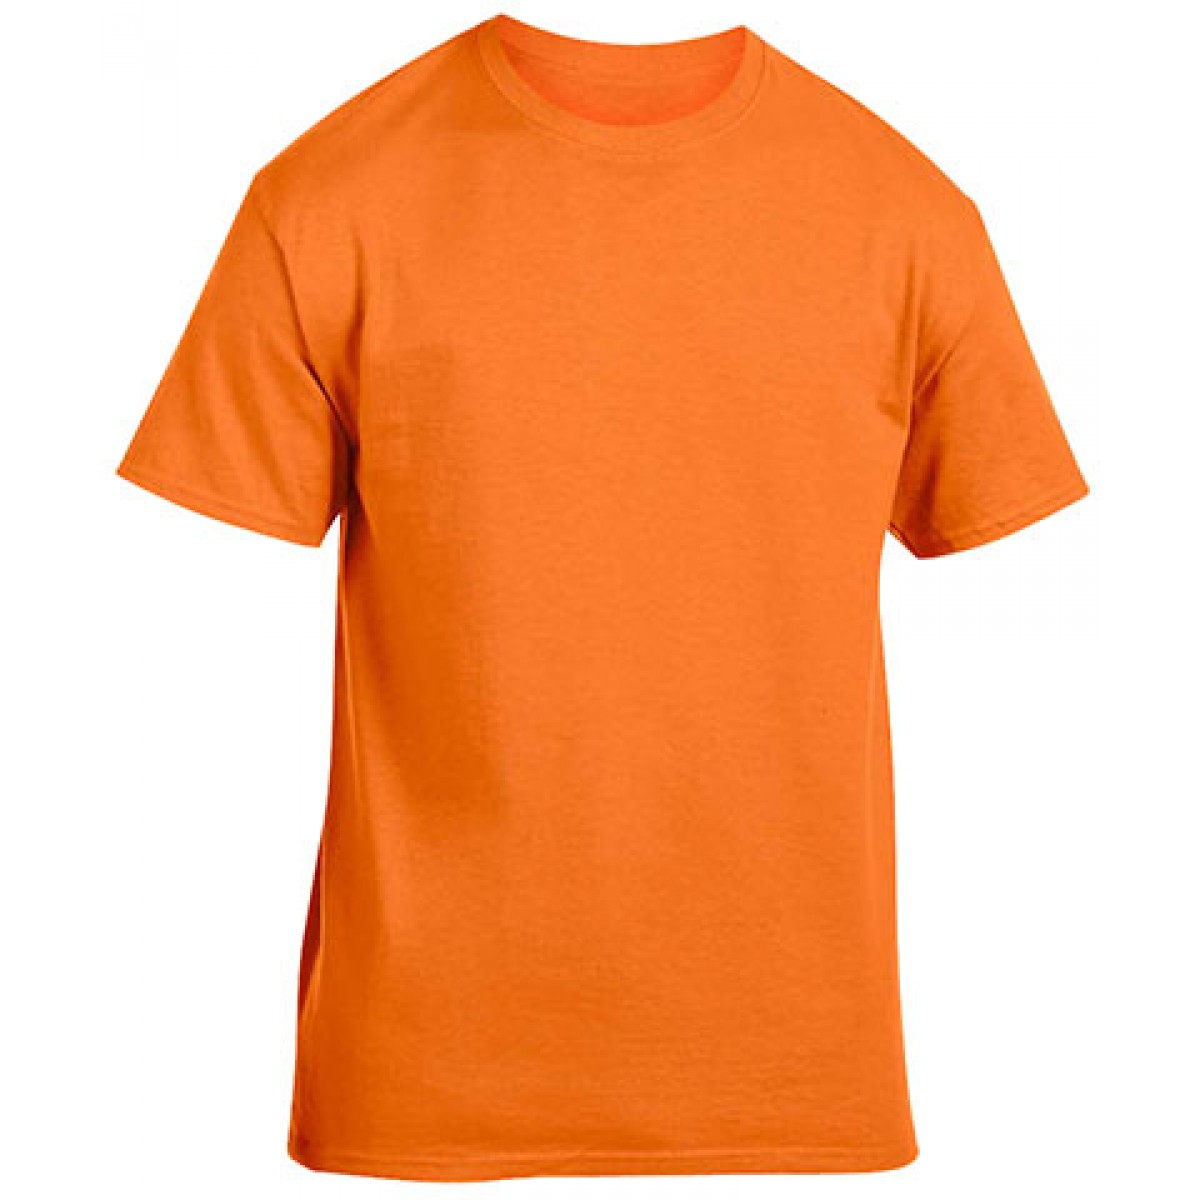 Heavy Cotton Activewear T-Shirt-Safety Orange-M